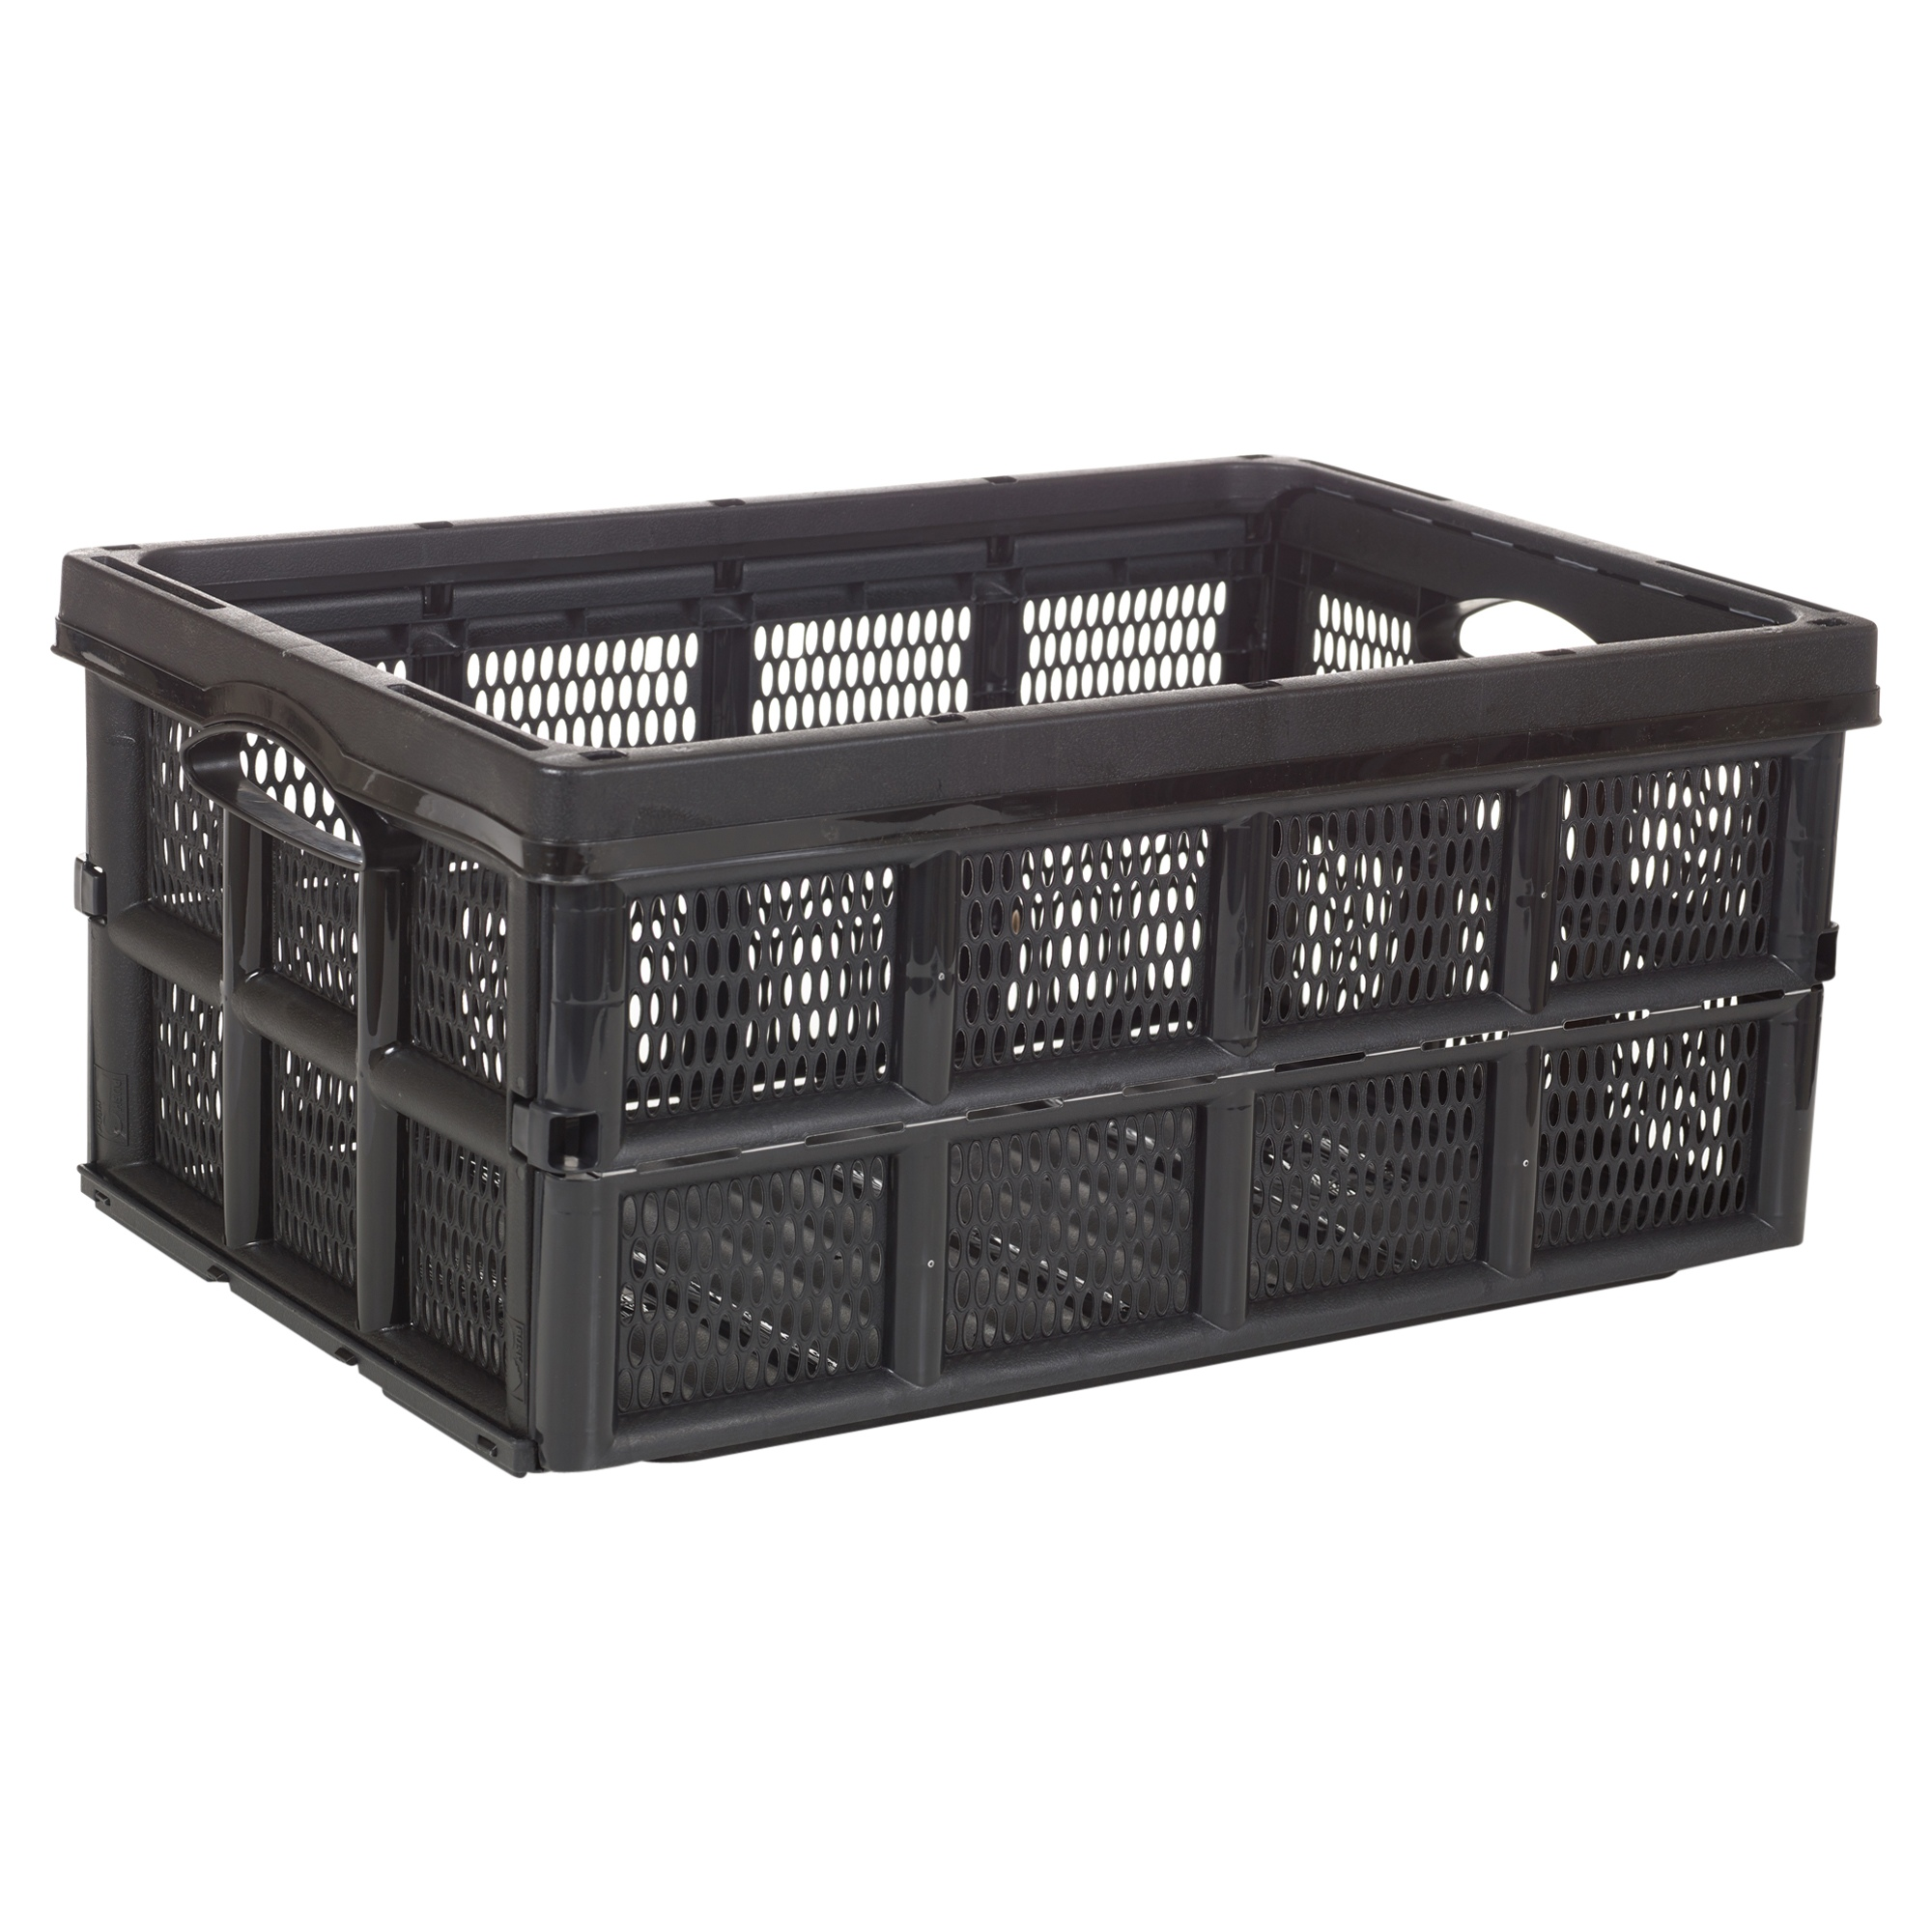 Collapsible 31 Litre Plastic Storage Crate Box Solution